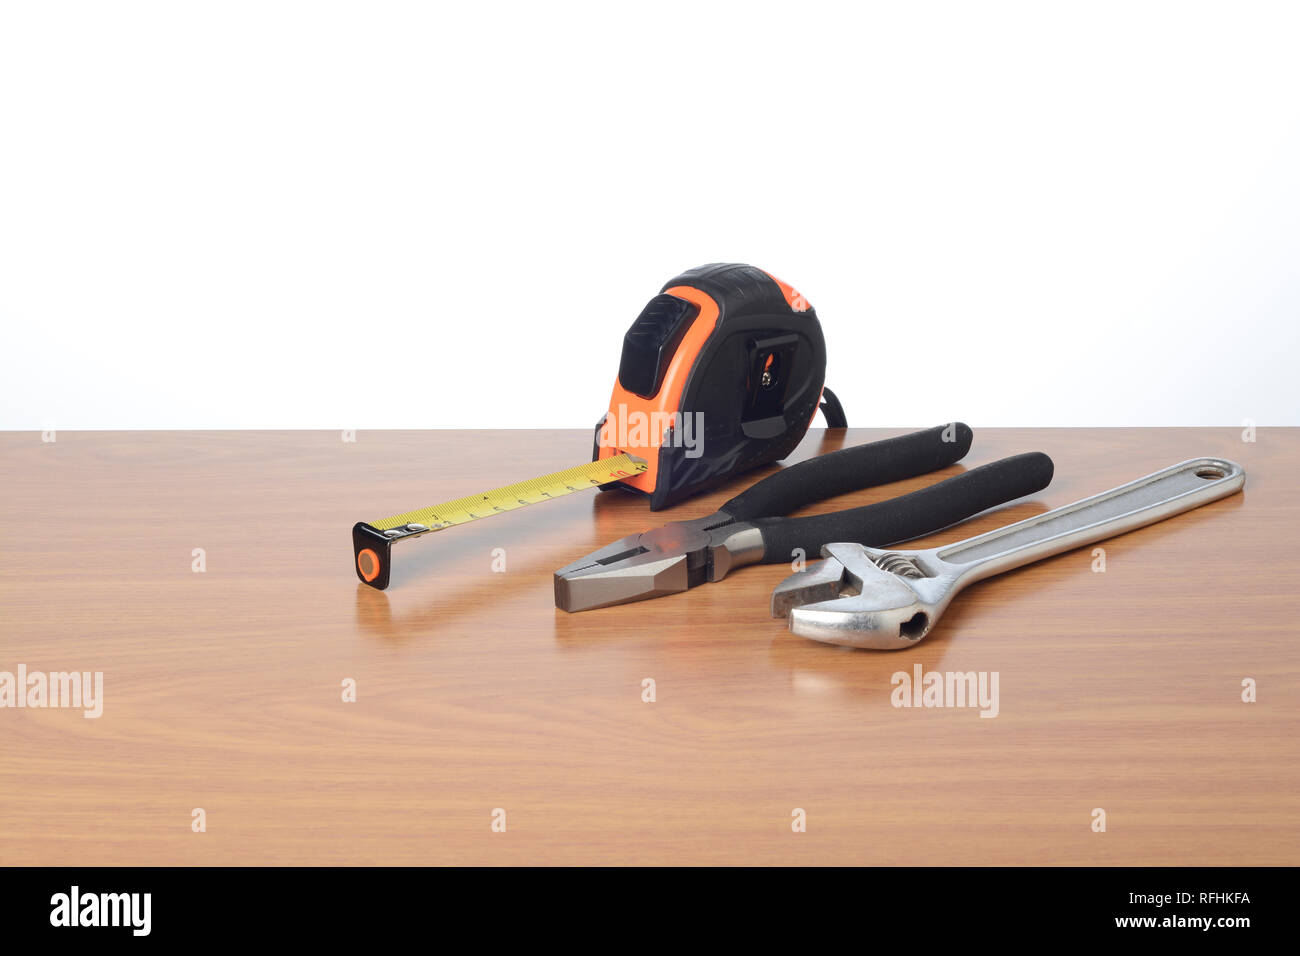 Tools on the table, tape measure, wrench and pliers - Stock Image